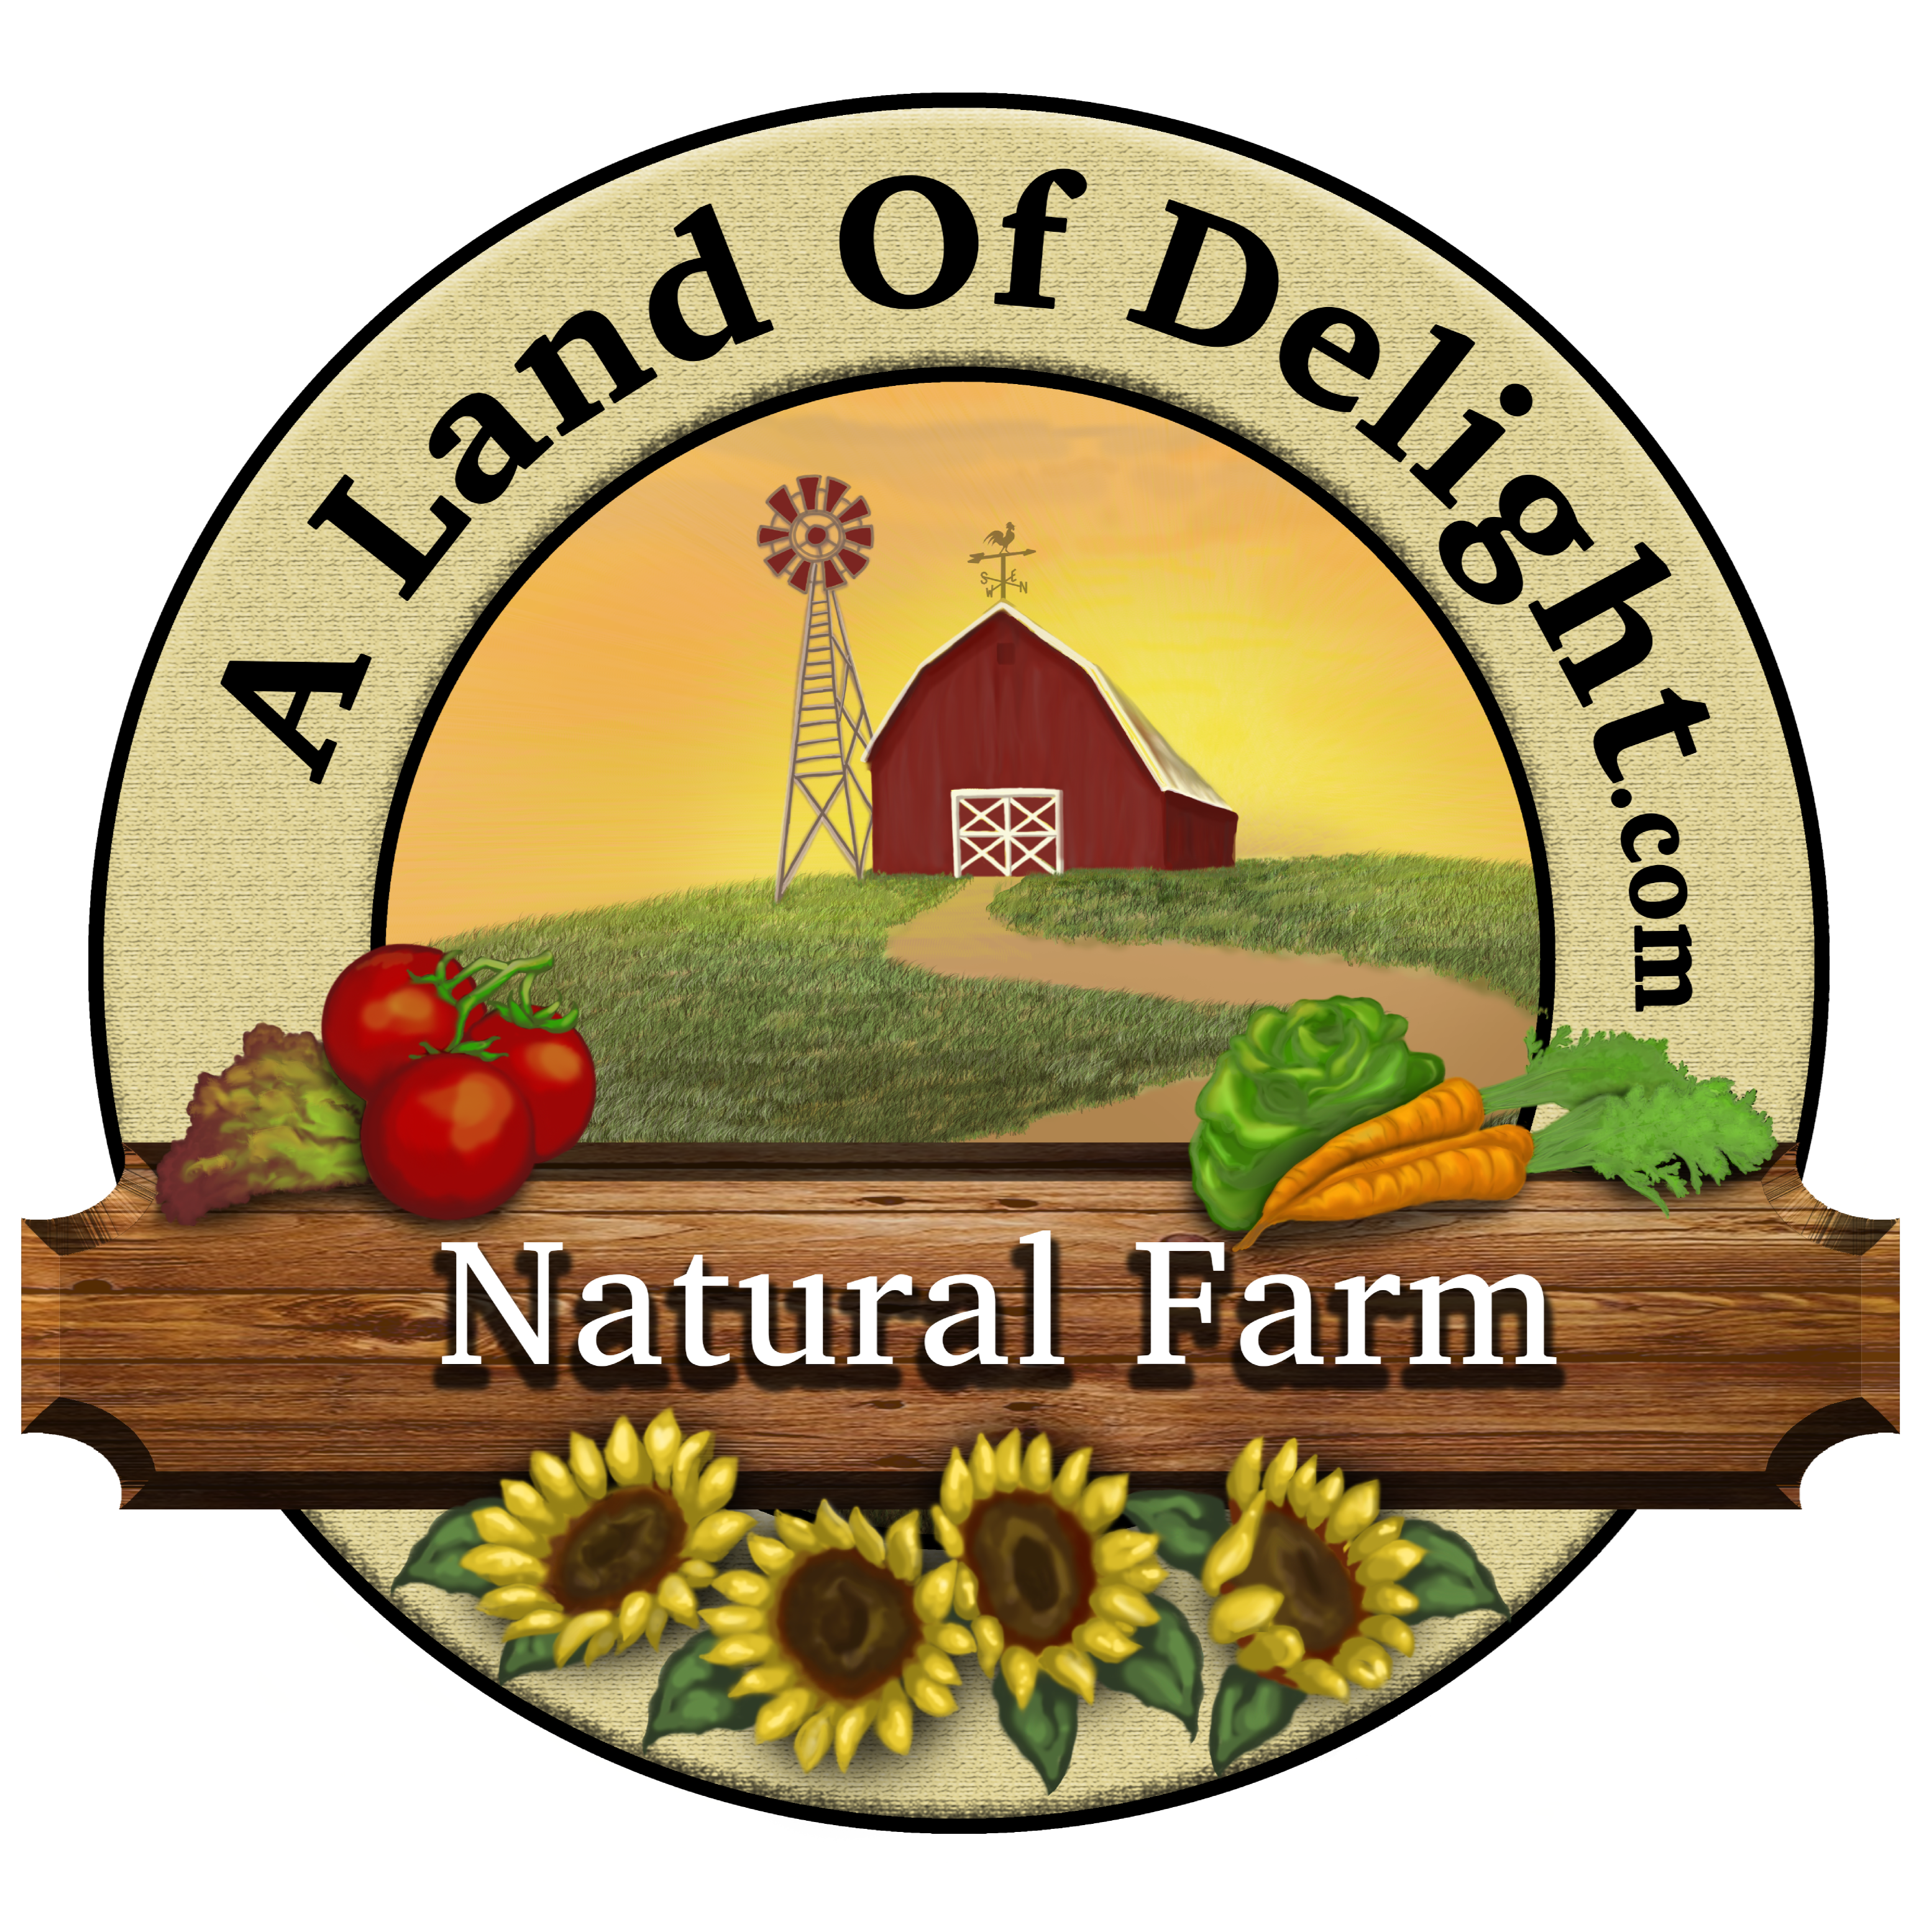 Apple cider donuts clipart banner Find Local, Organic Apples   Agrilicious! banner